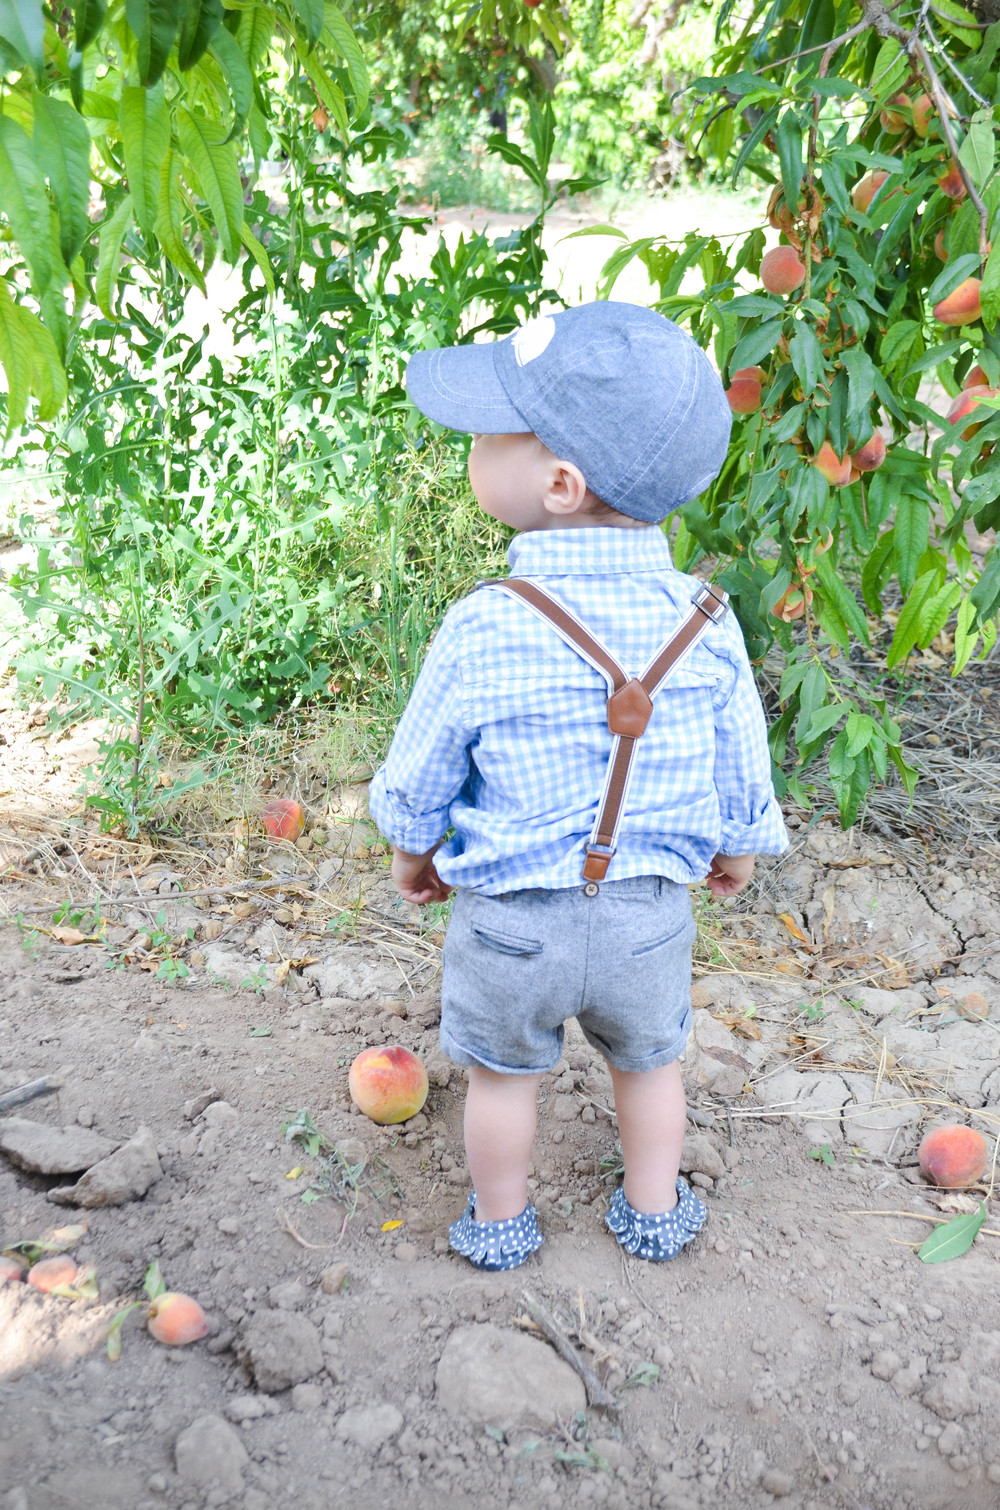 Picking Peaches at Schnepf Farm | Momma Society-The Community of Modern Moms | www.MommaSociety.com